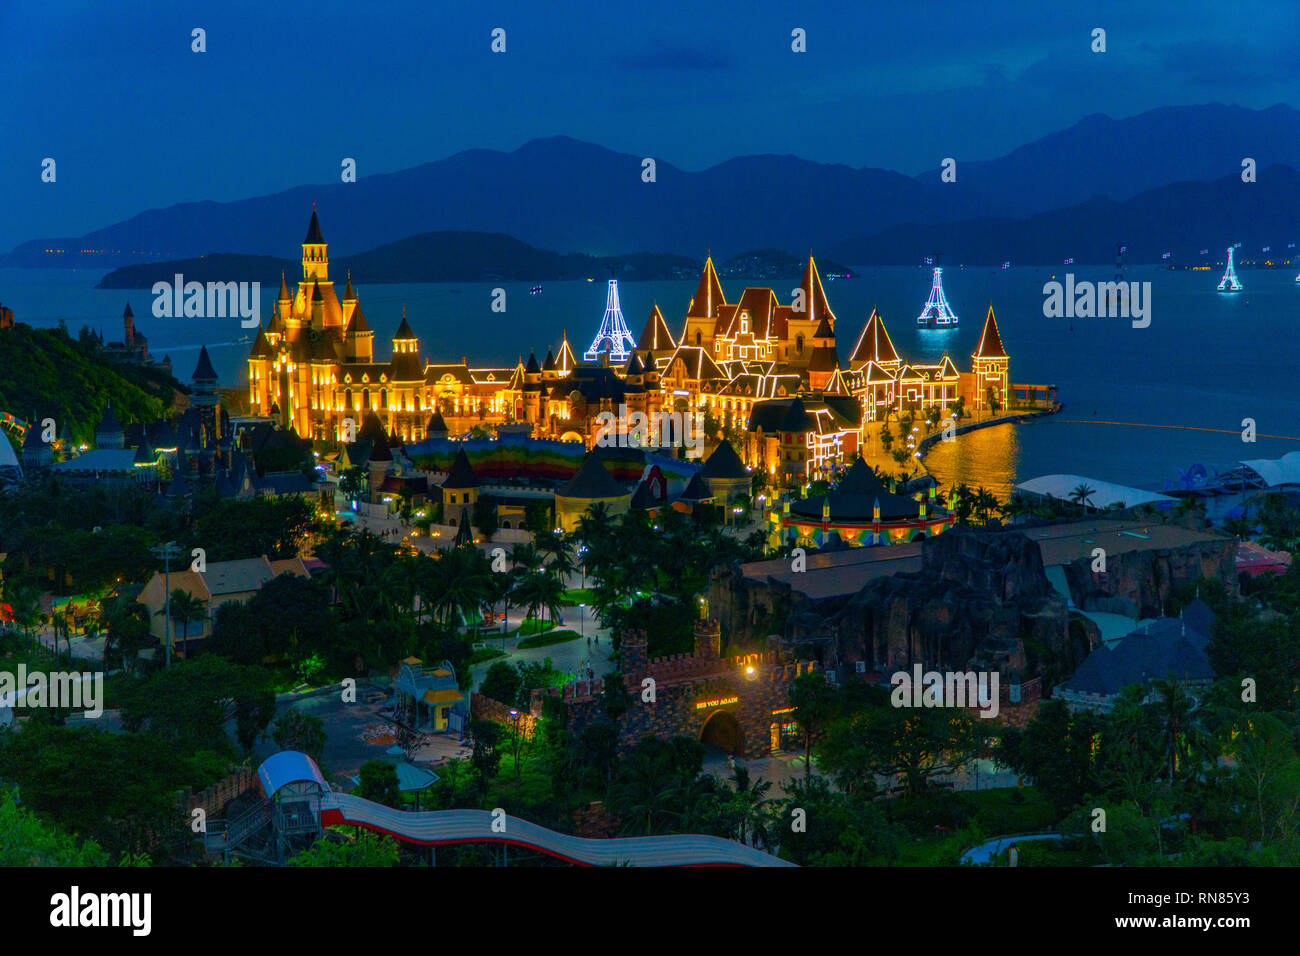 Vinpearl by night - Stock Image